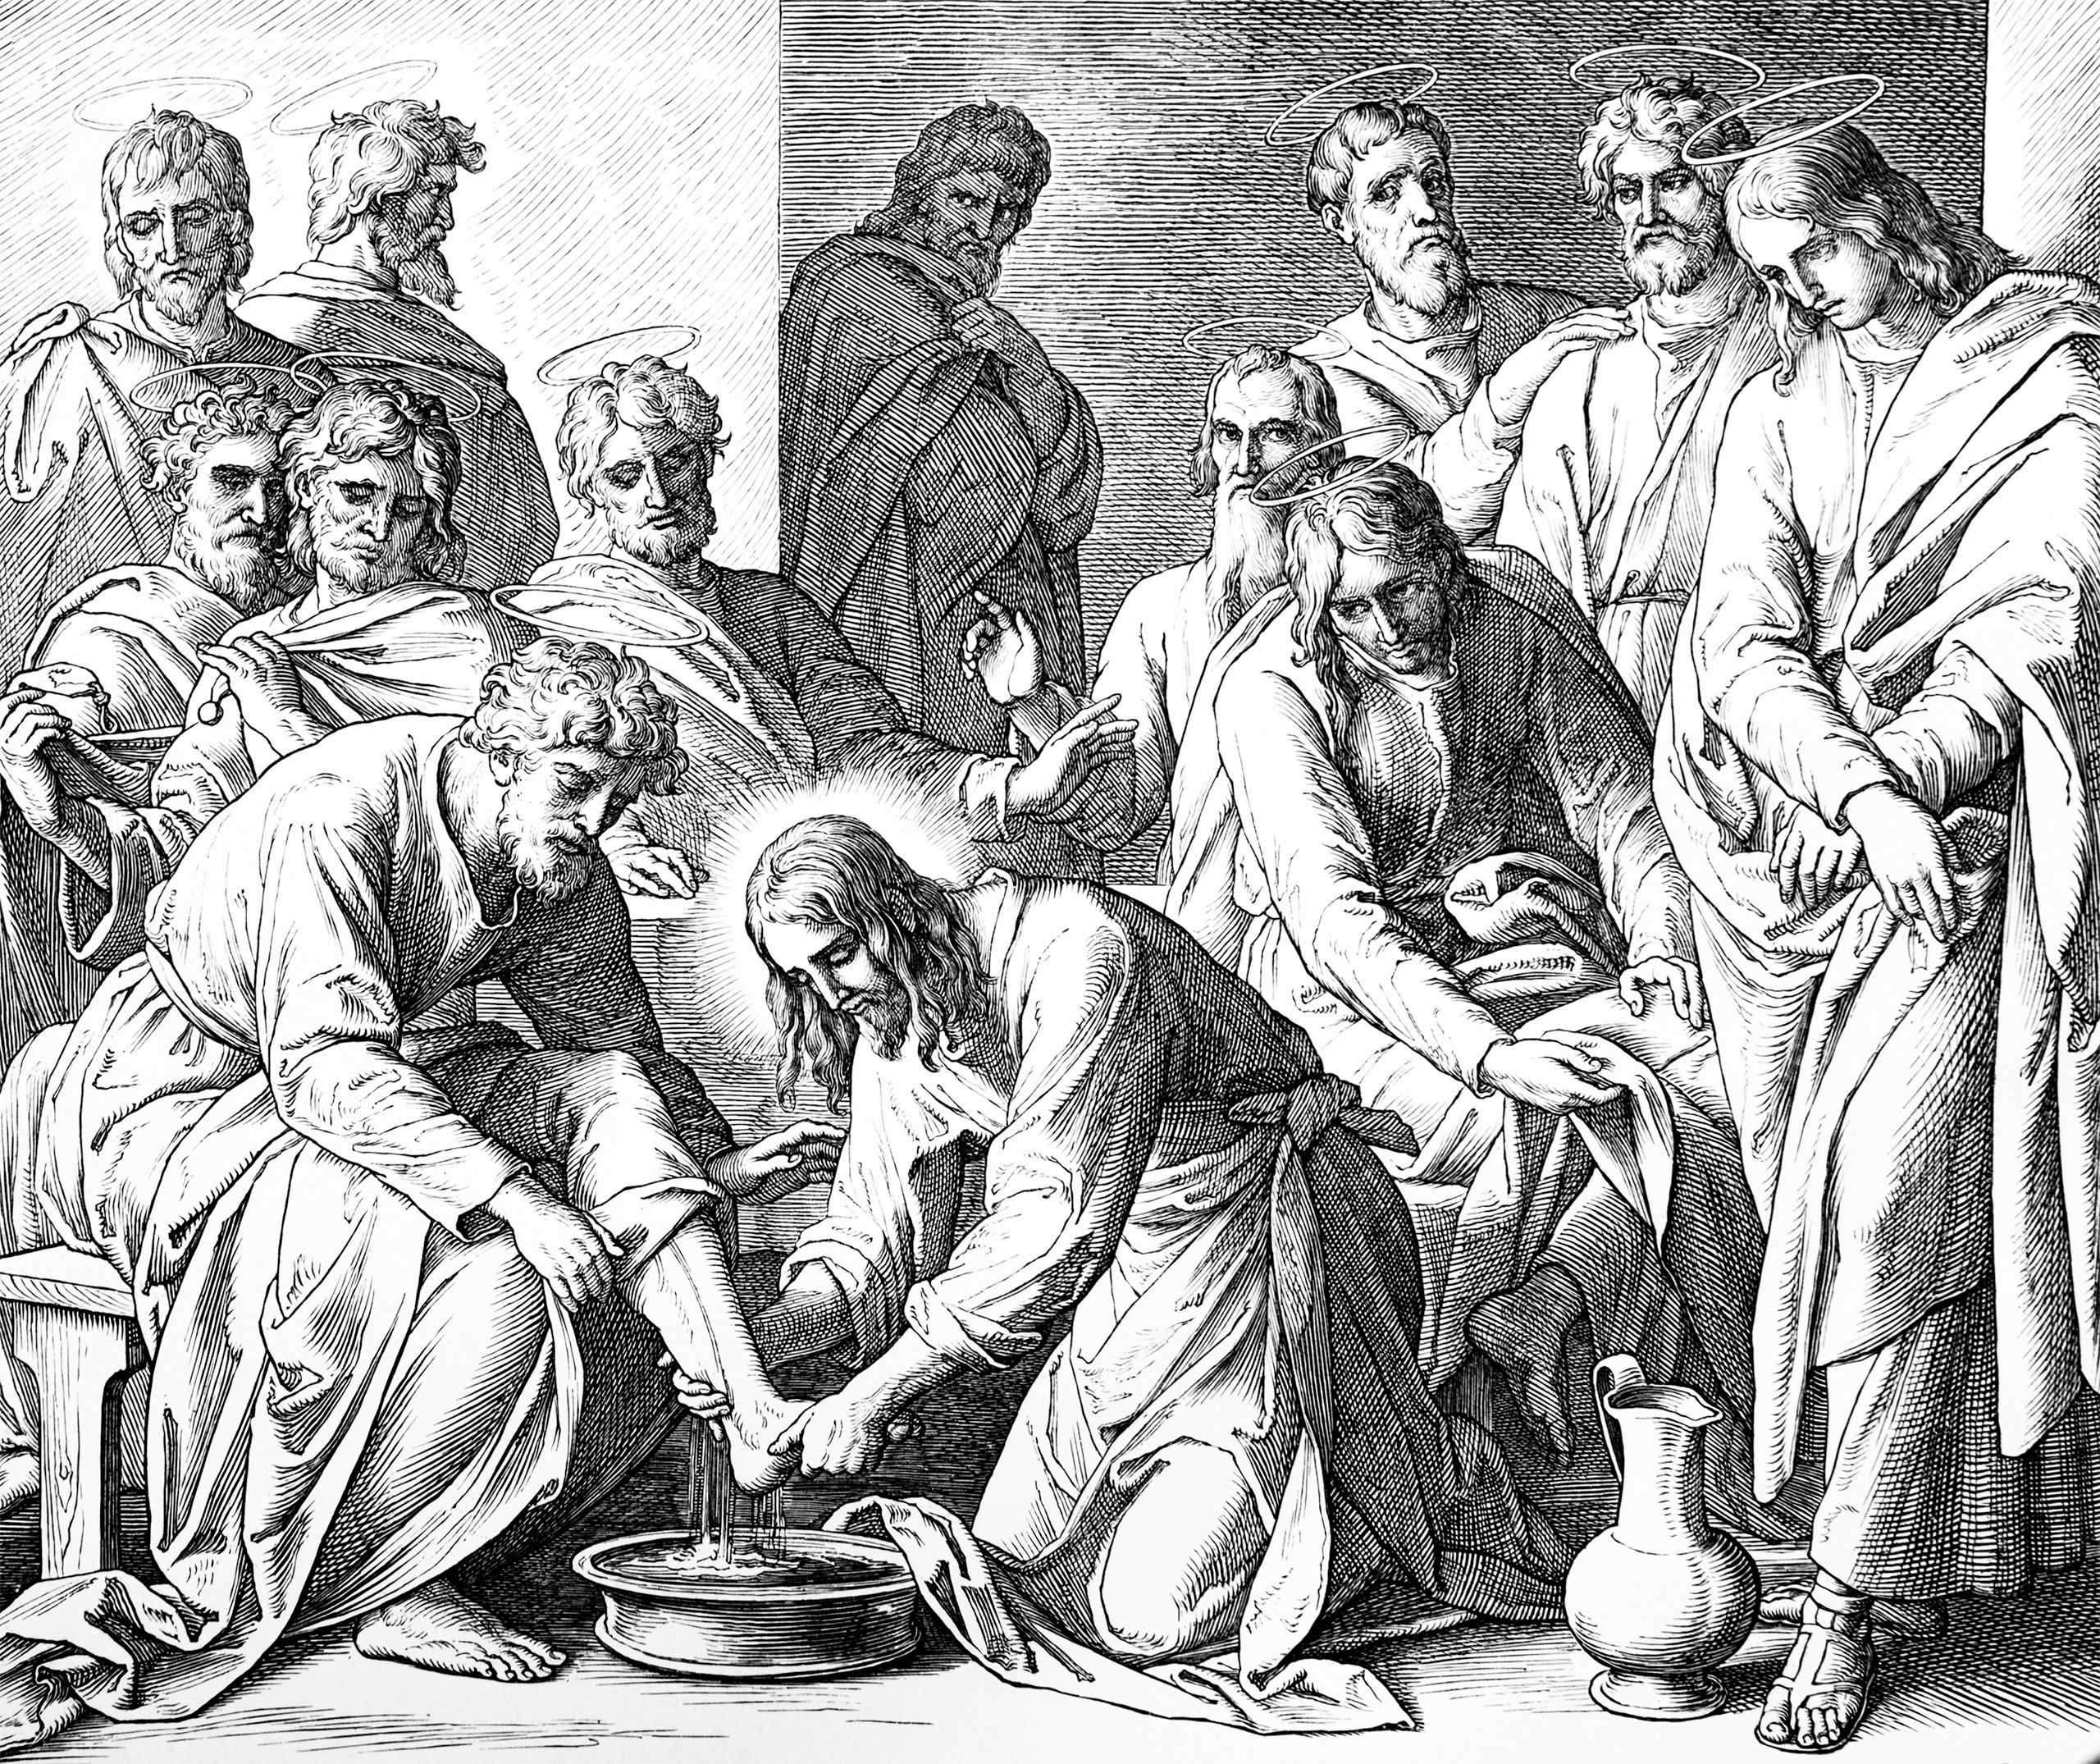 Jesus washes the Disciples' feet